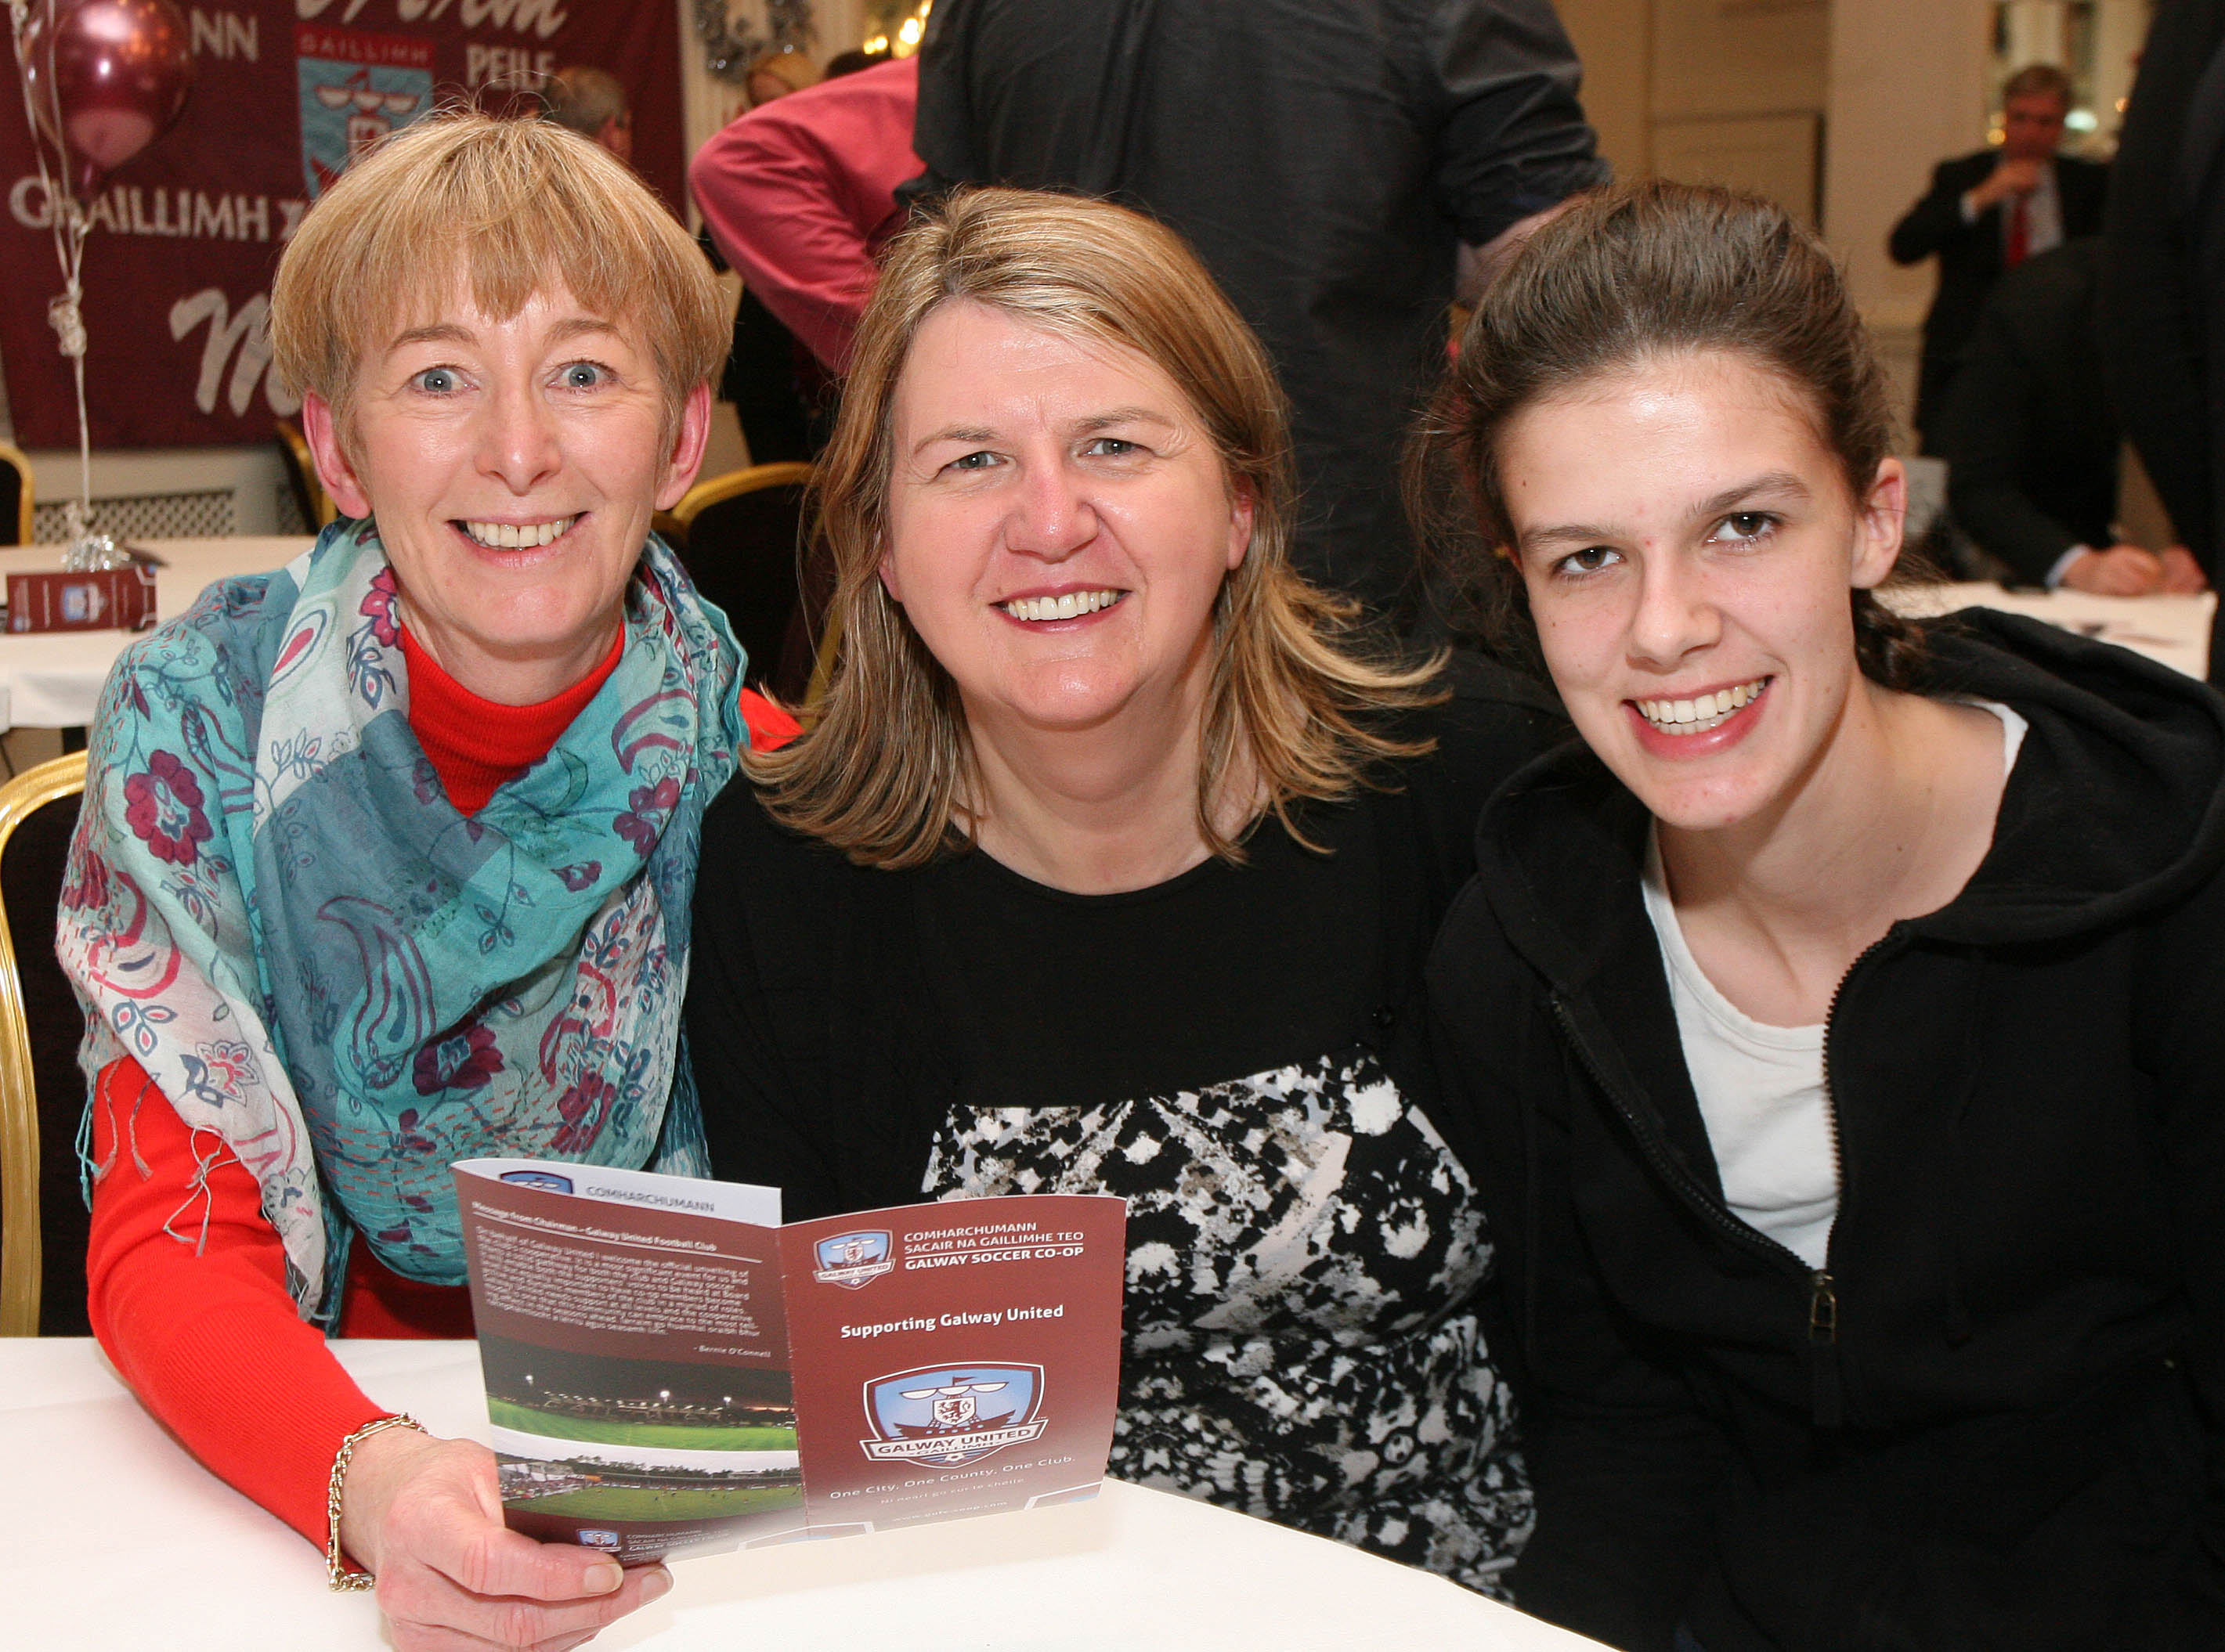 Gabrielle Griffin, Rahoon, with Geraldine and Orlaith Sweeney, Crestwood, at the launch of the Galway Soccer Co-op supporting Galway United at Hotel Meyrick.